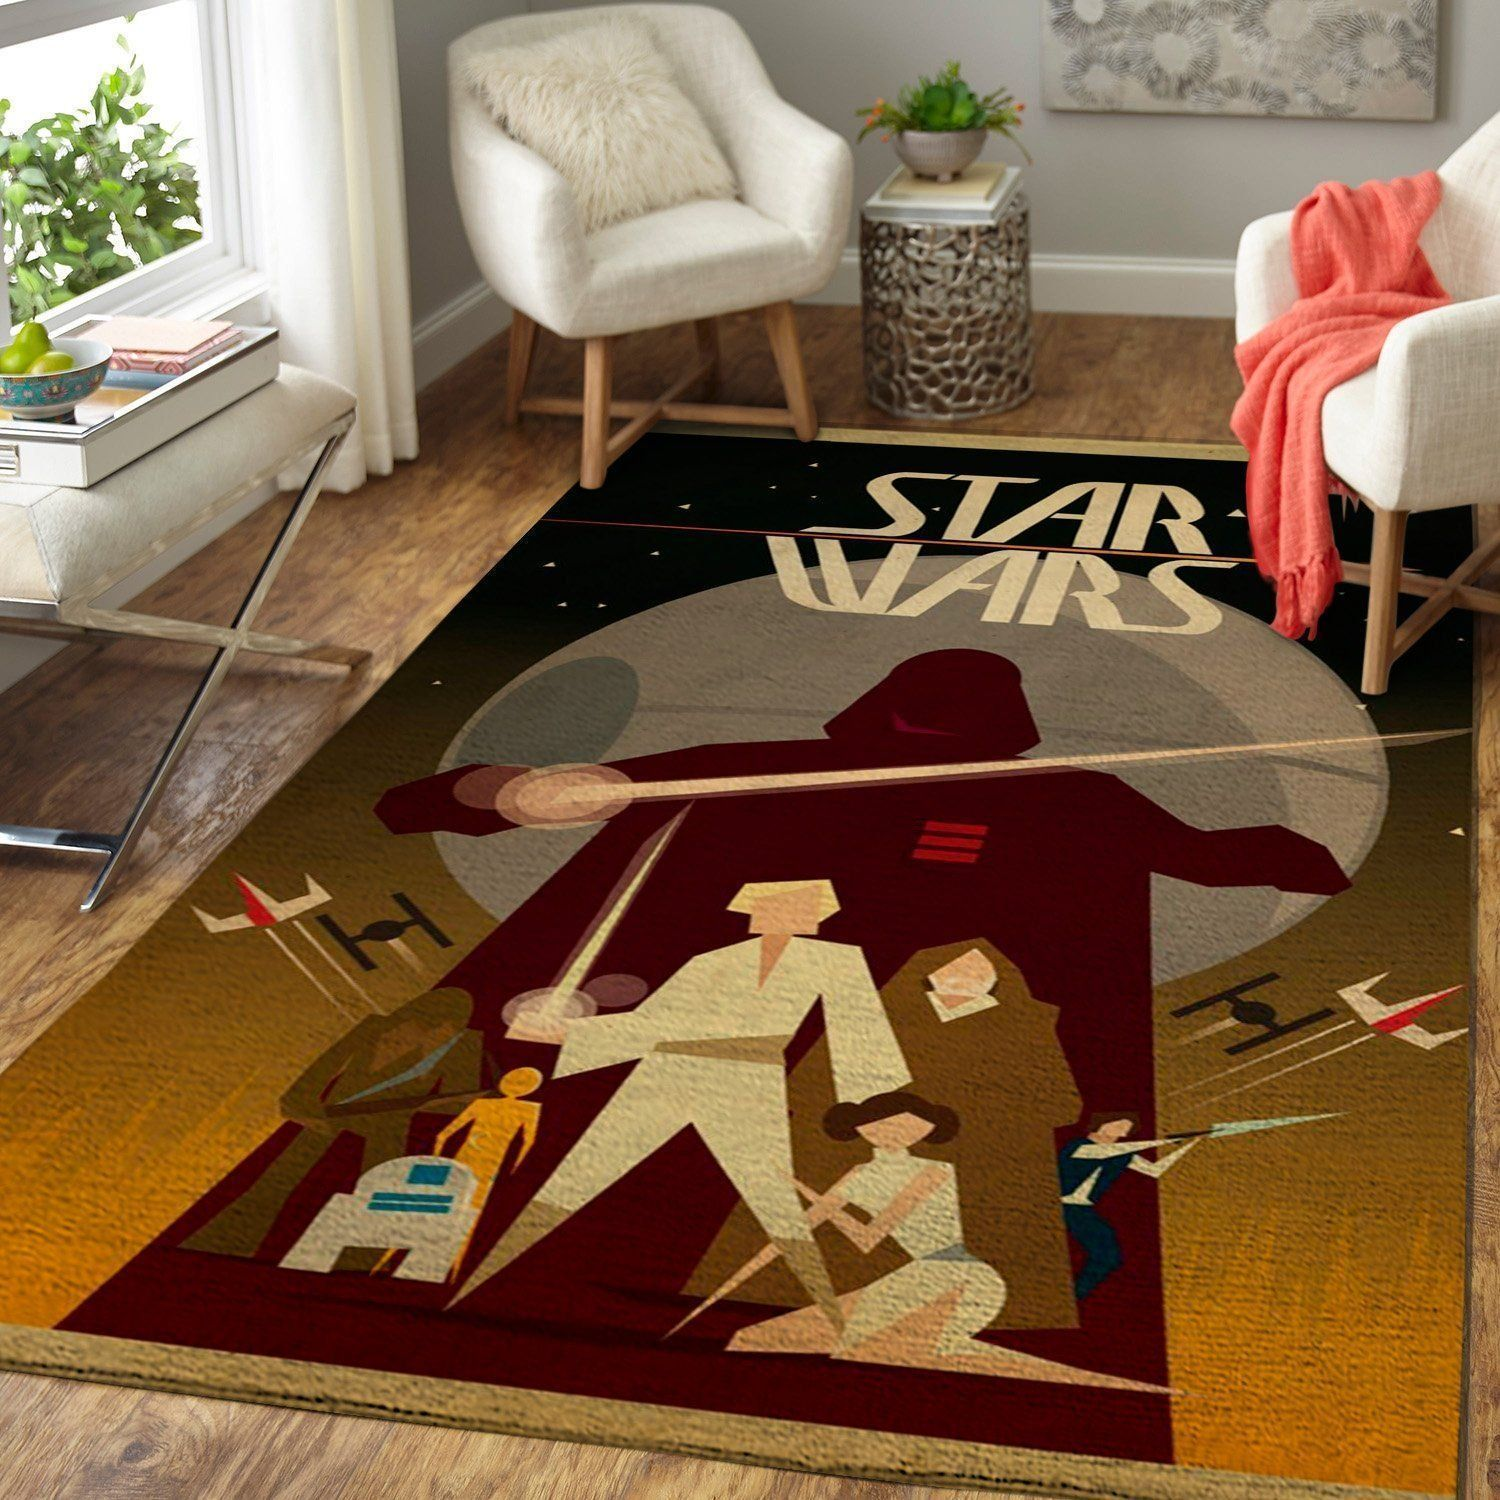 Star Wars Area Rugs, Movie Living Room Carpet, Custom Floor Decor 19101918